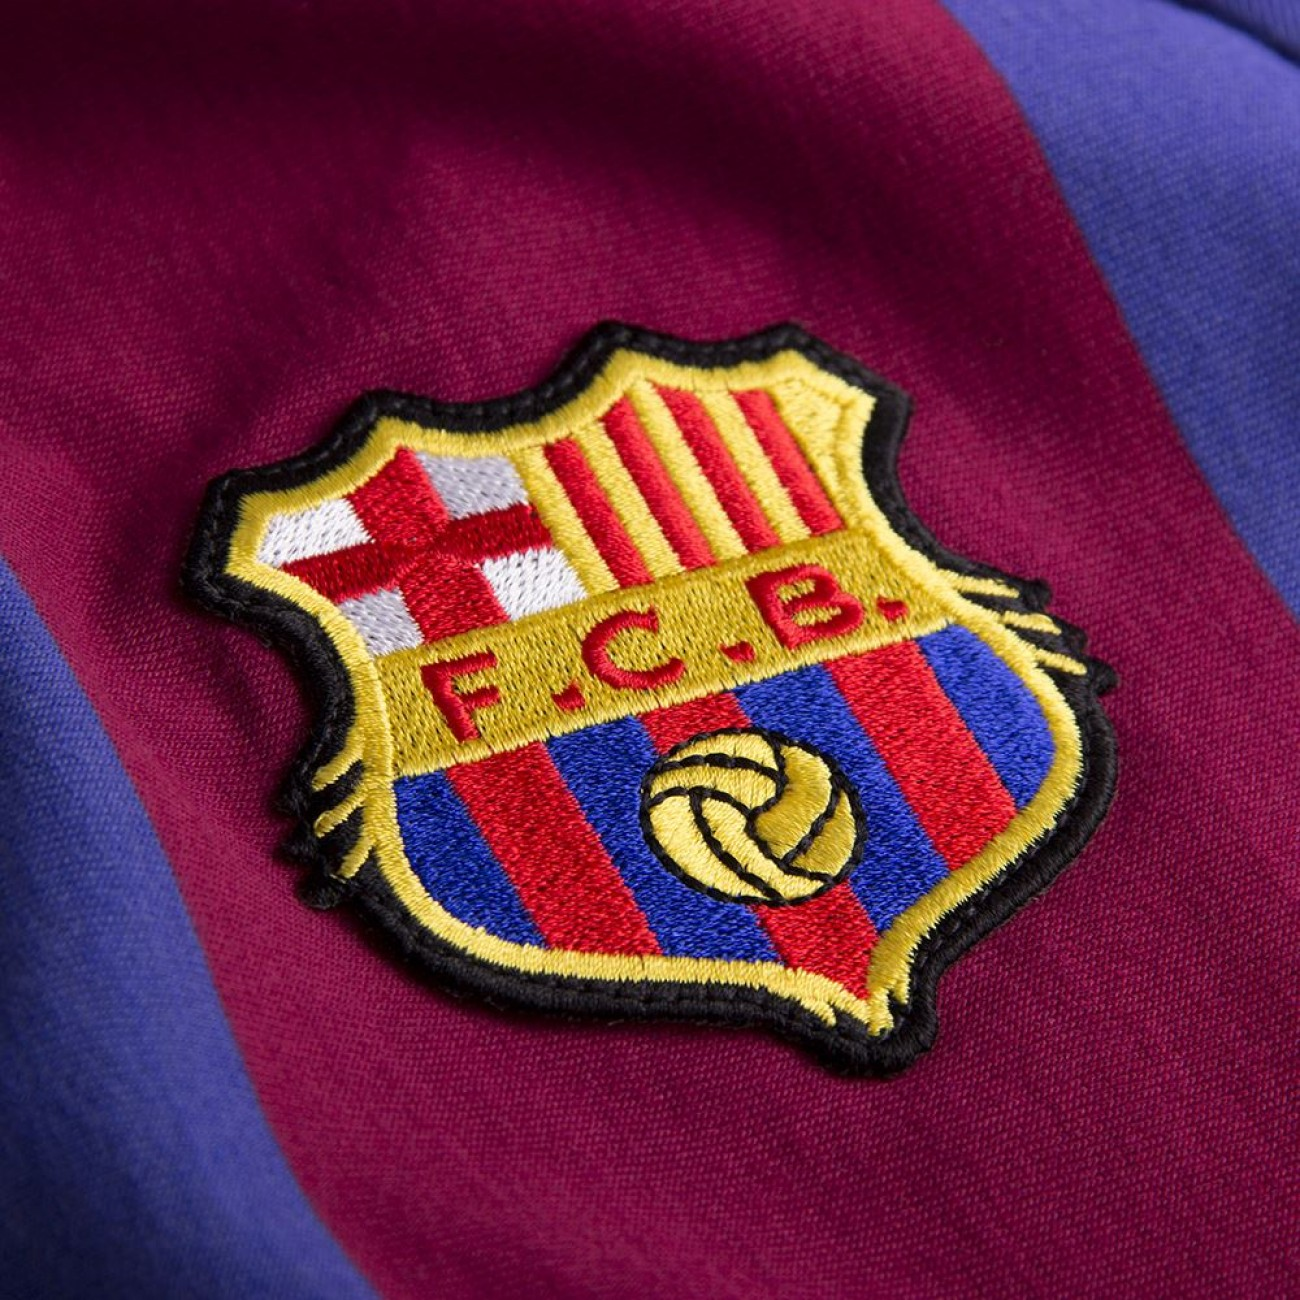 Fc barcelona 198081 retro shirt retrofootball fc barcelona 198081 retro shirt stopboris Choice Image